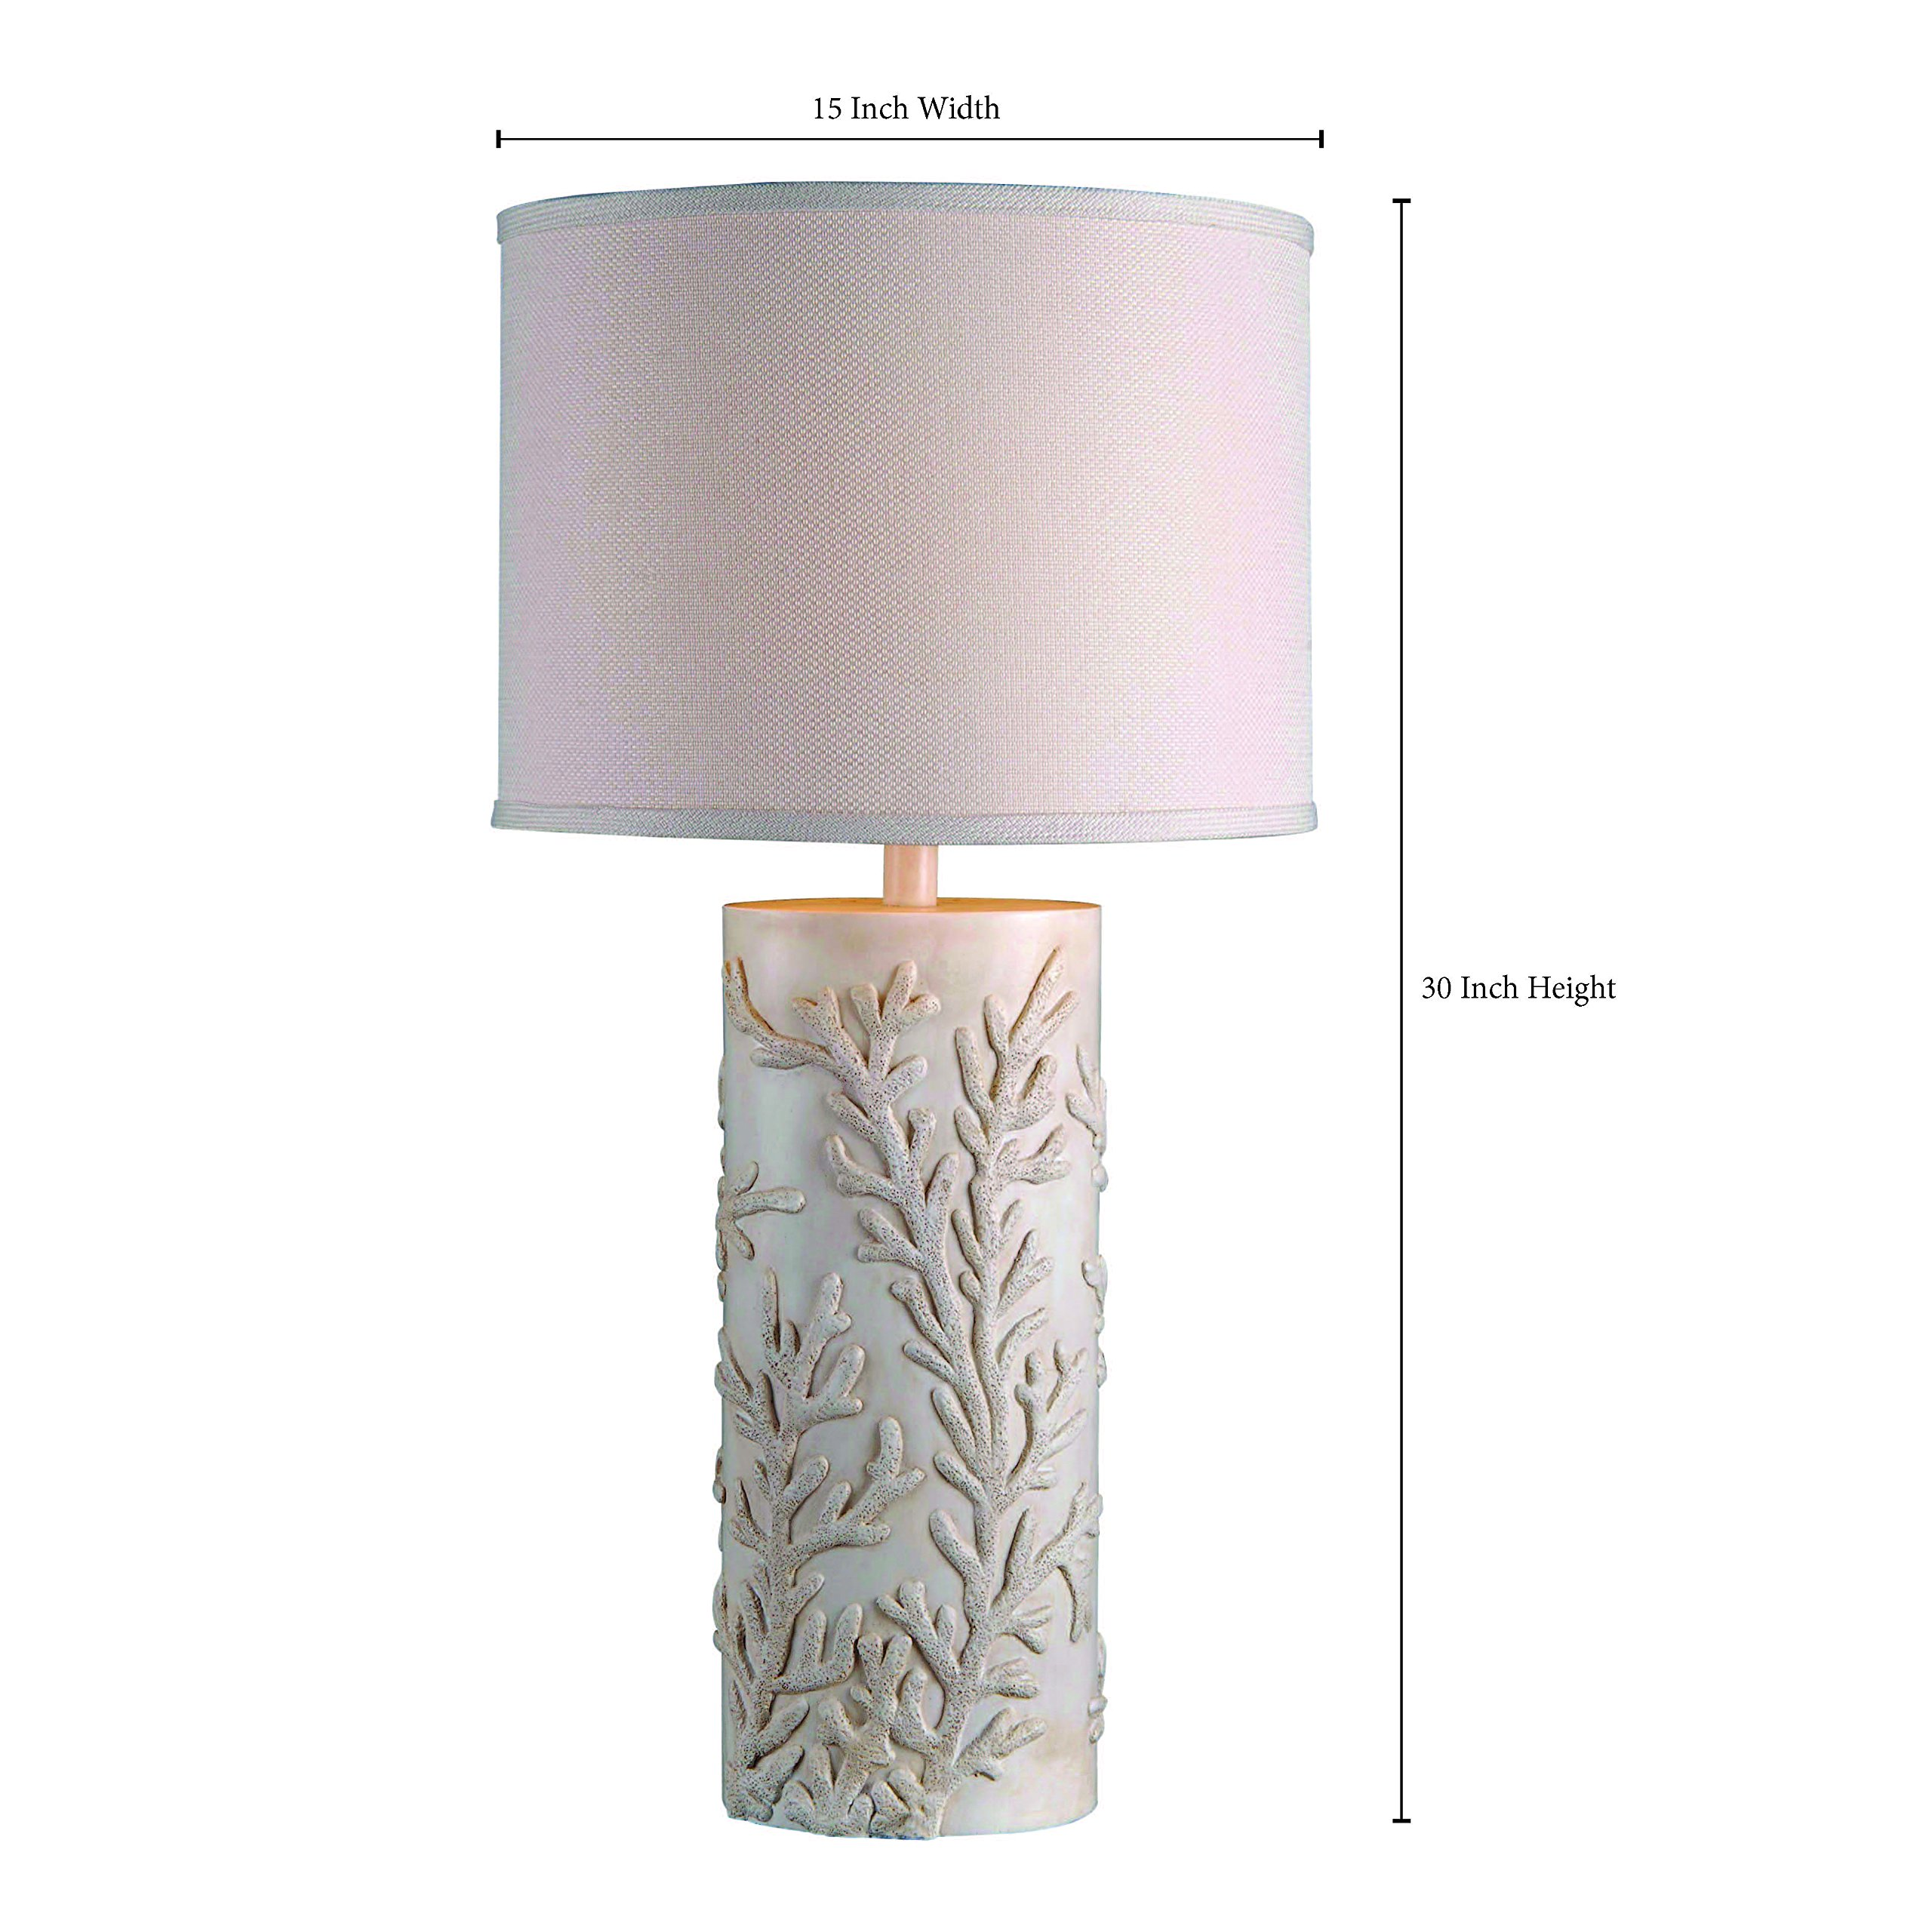 Kenroy Home 32267AWH Reef Table Lamp, Antique White Finish by Kenroy Home (Image #3)